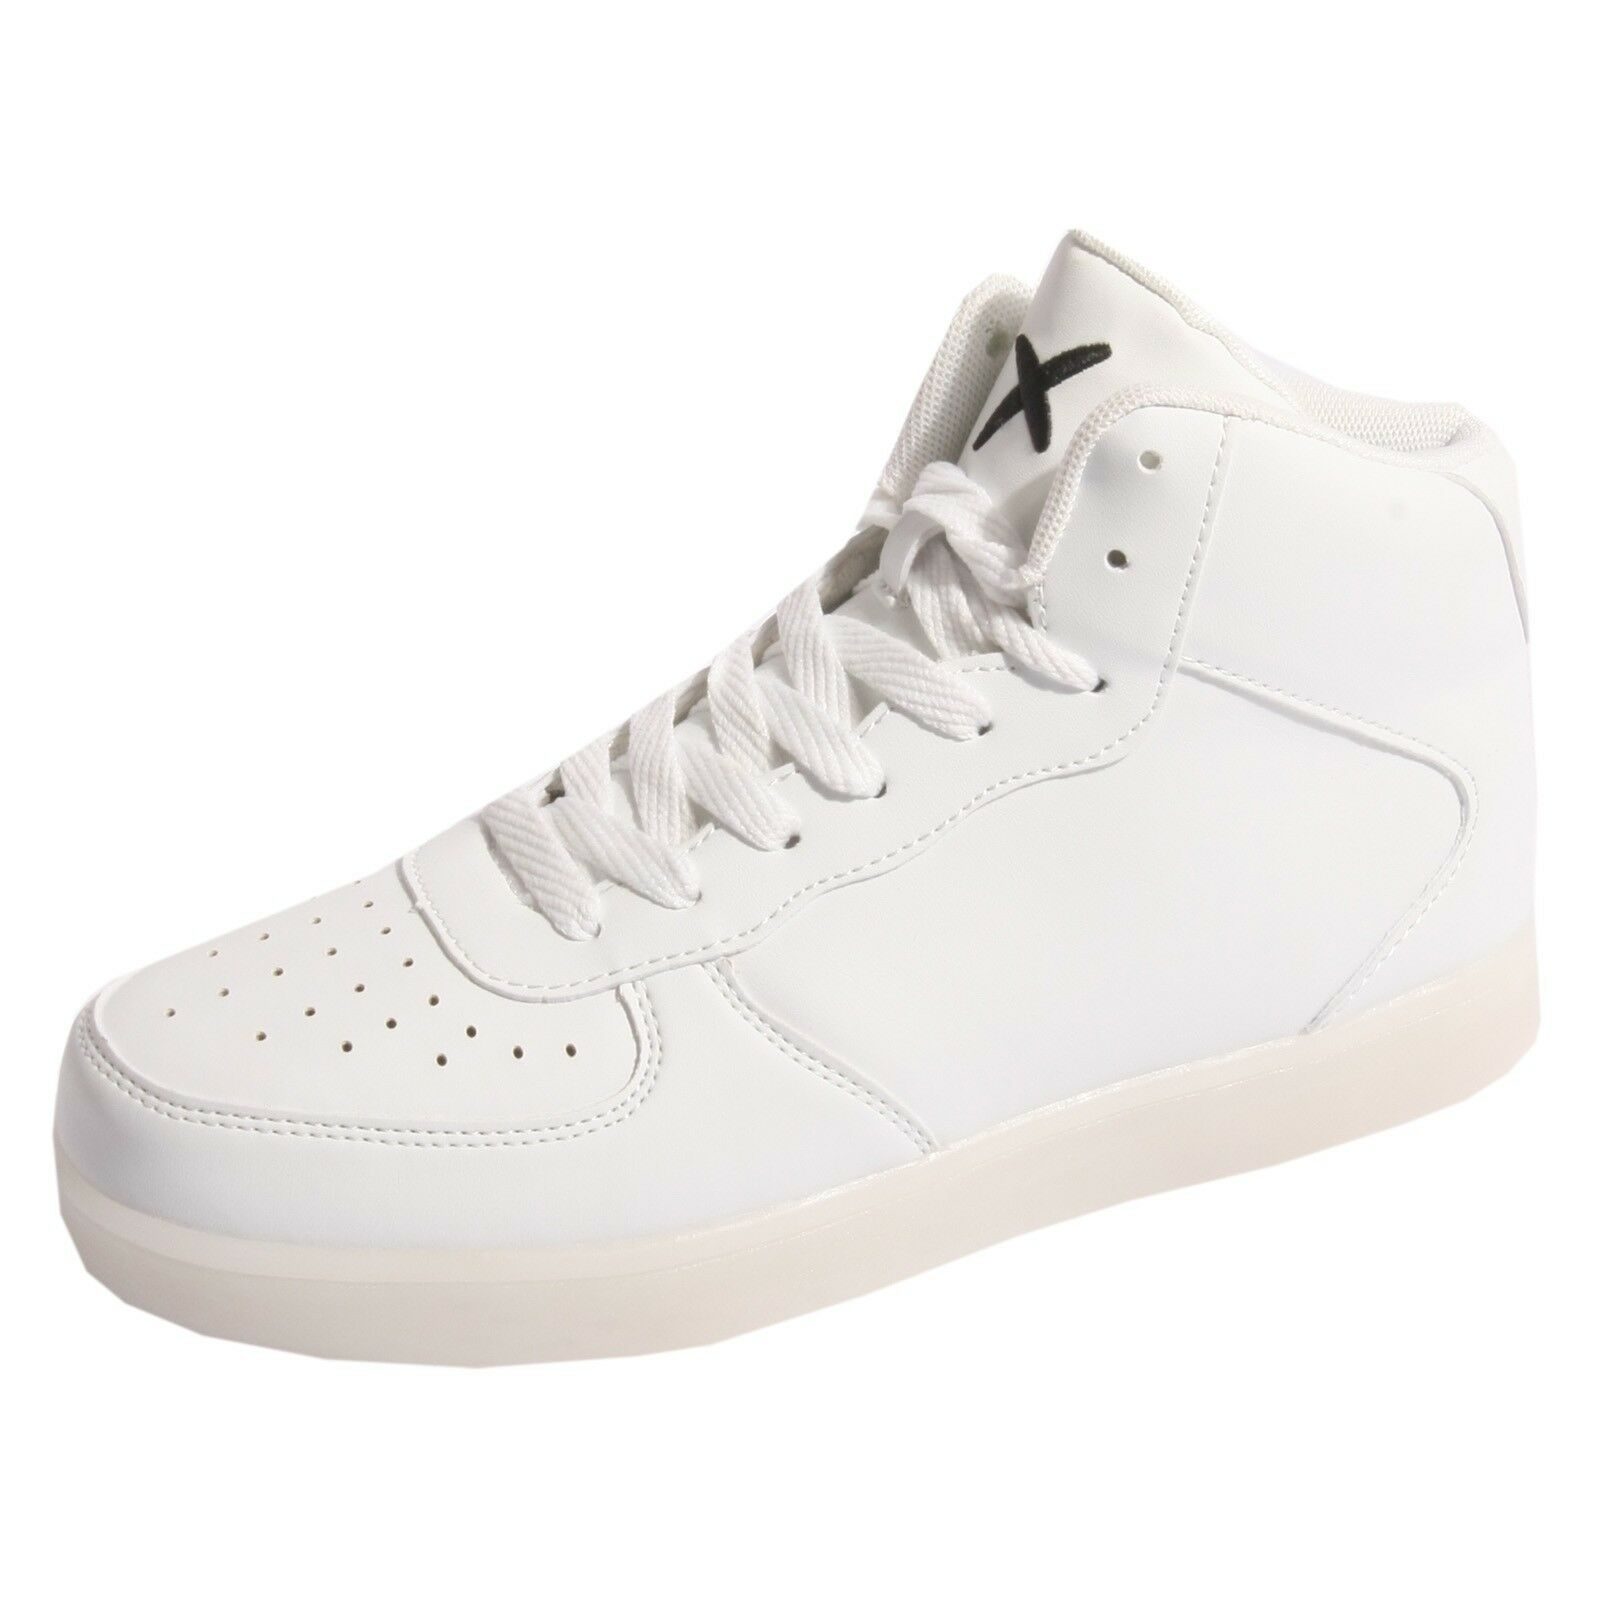 B0511 sneaker uomo WIZE & OPE LIGHT scarpa bianca shoes men